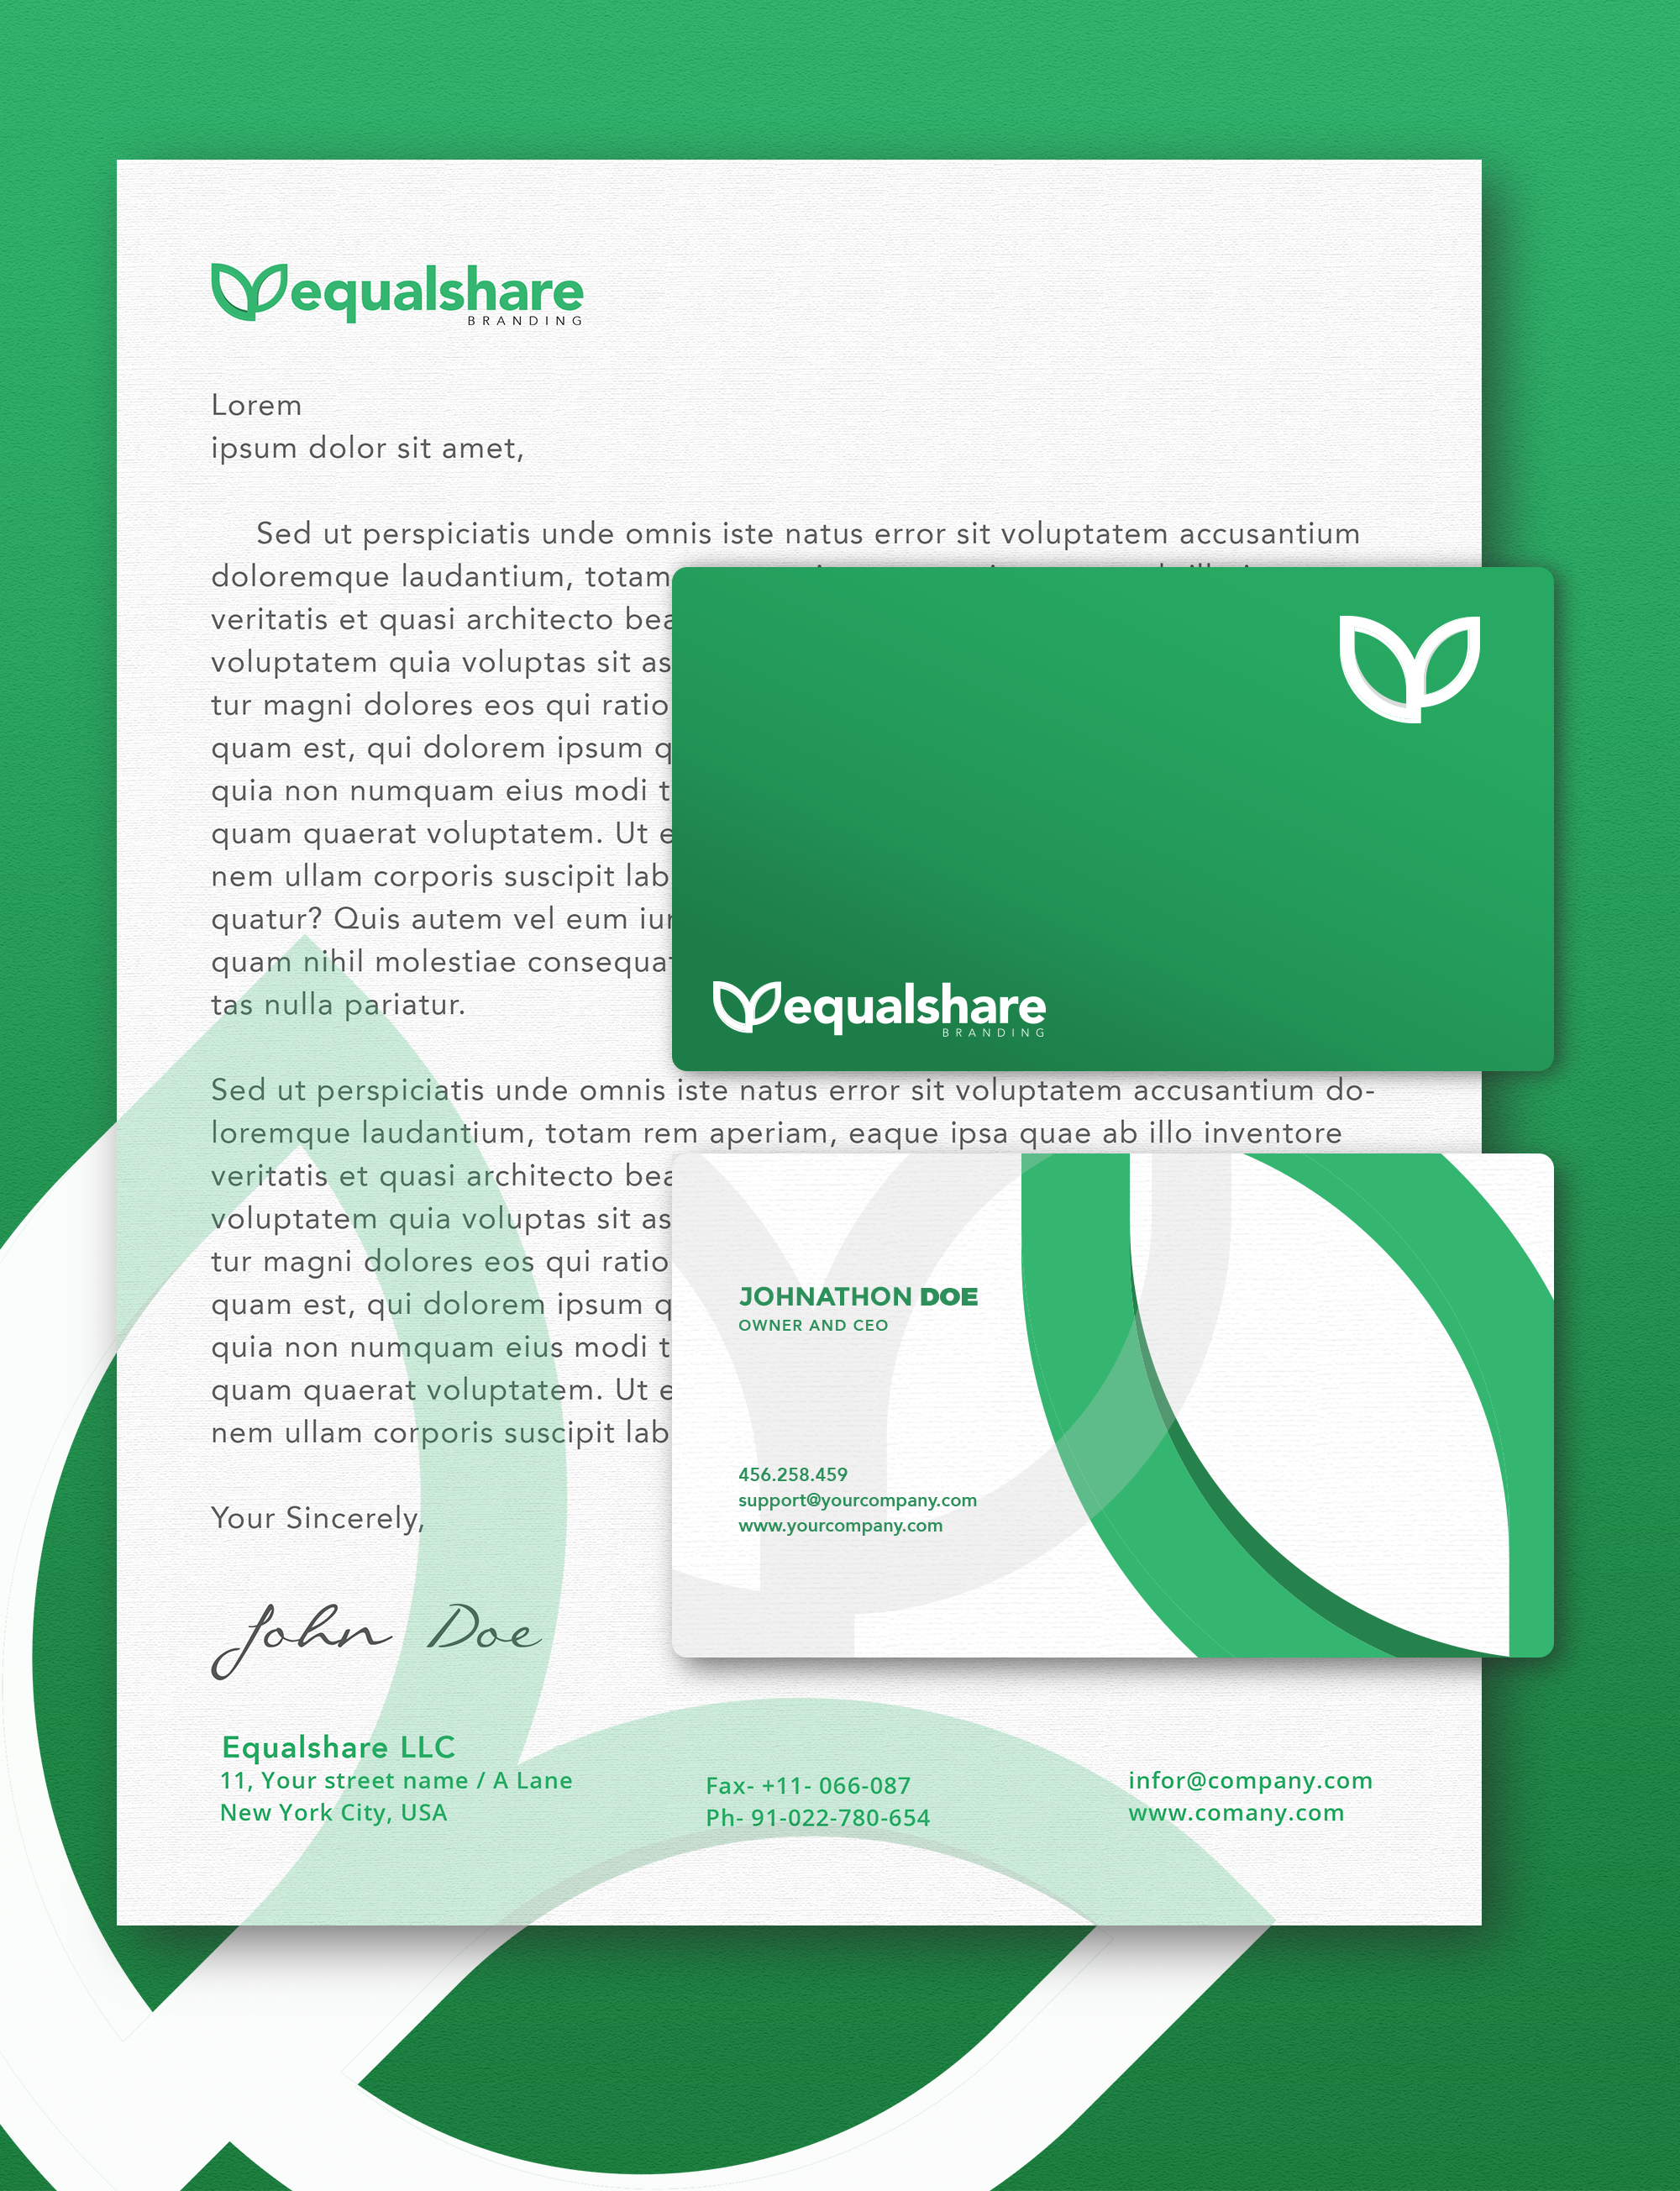 how to arrange a business card and letterhead on a template when sending a logo to client